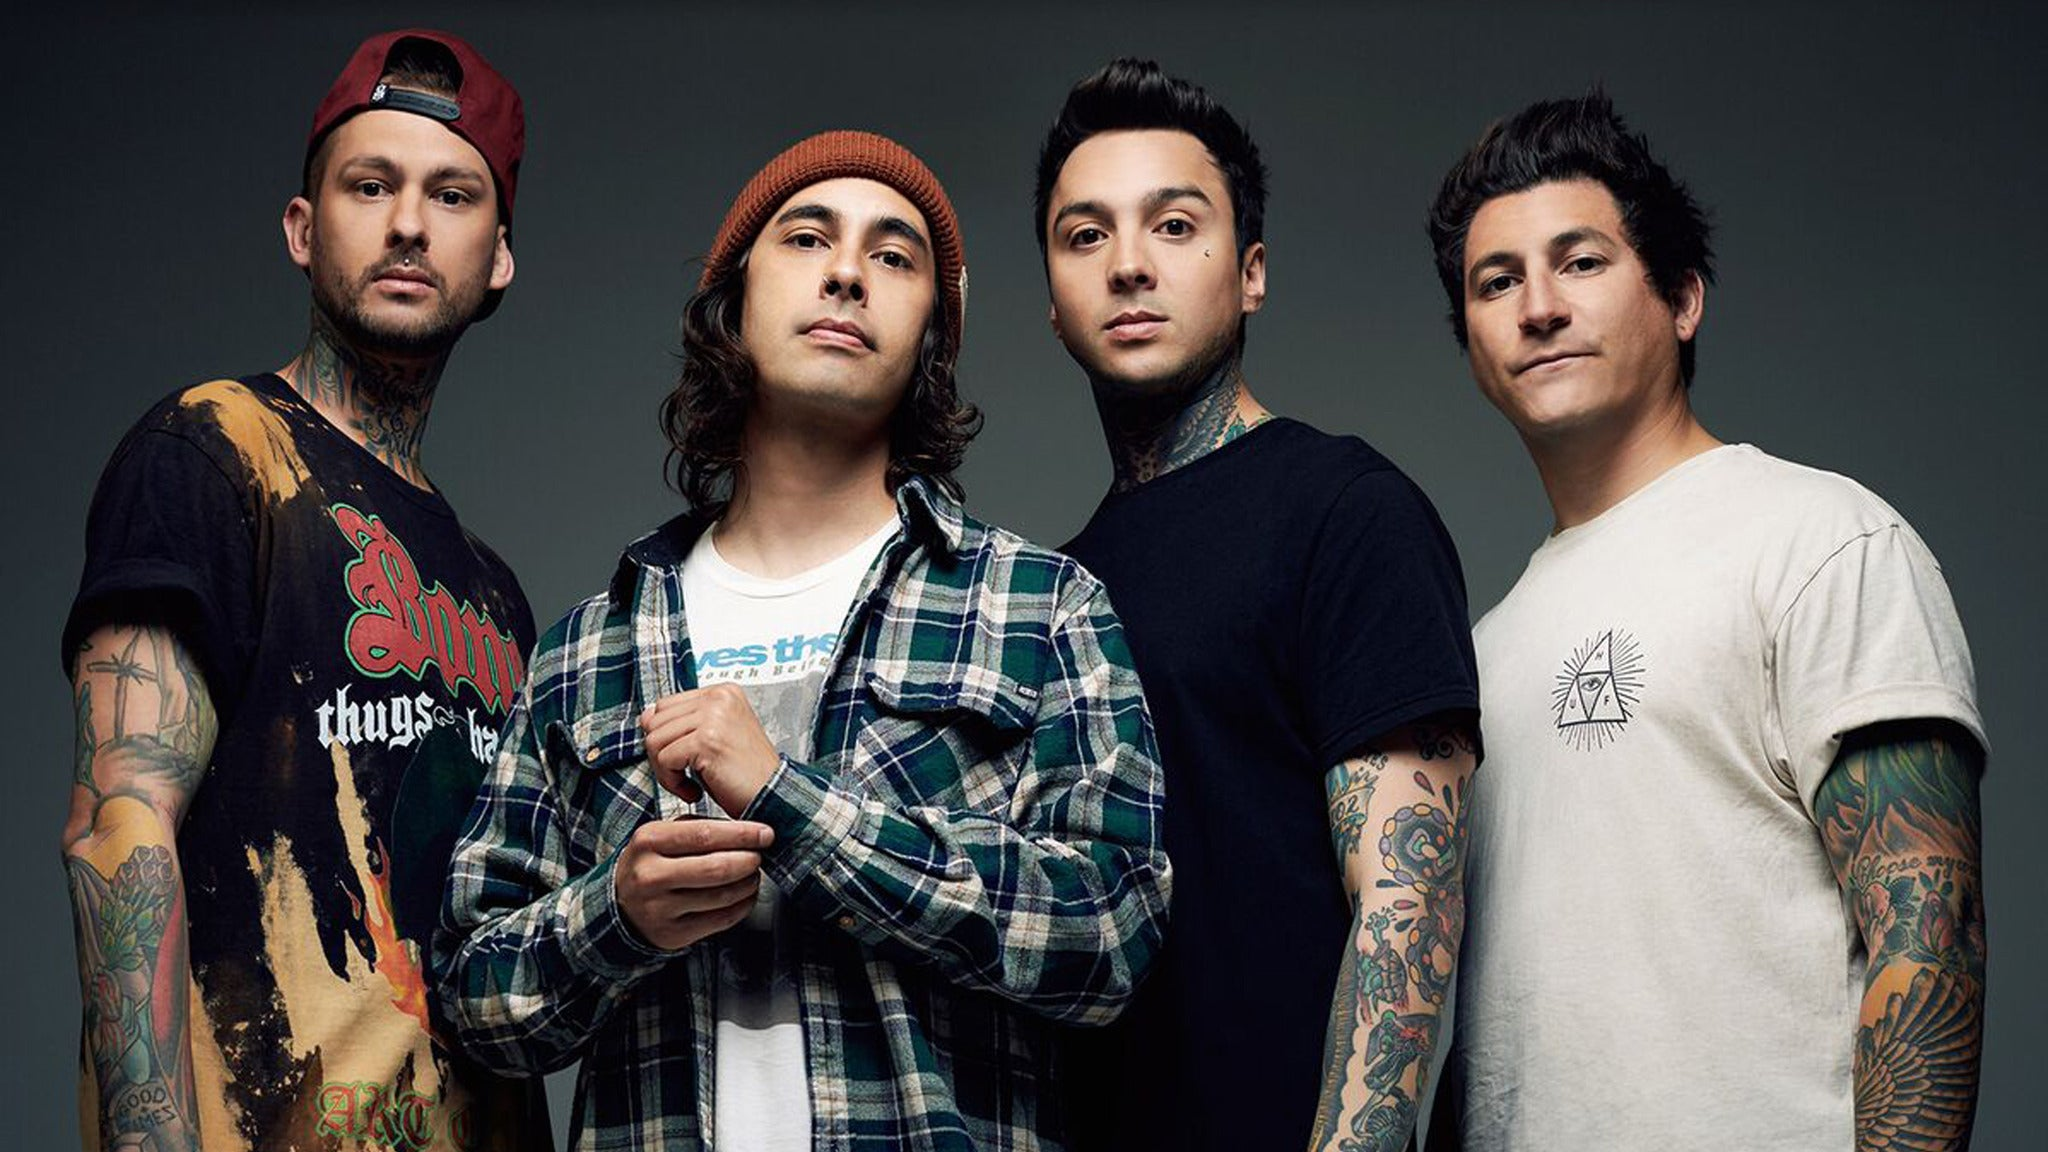 Oh Snow You Didn't 3 W/Pierce the Veil and We Predict a Riot